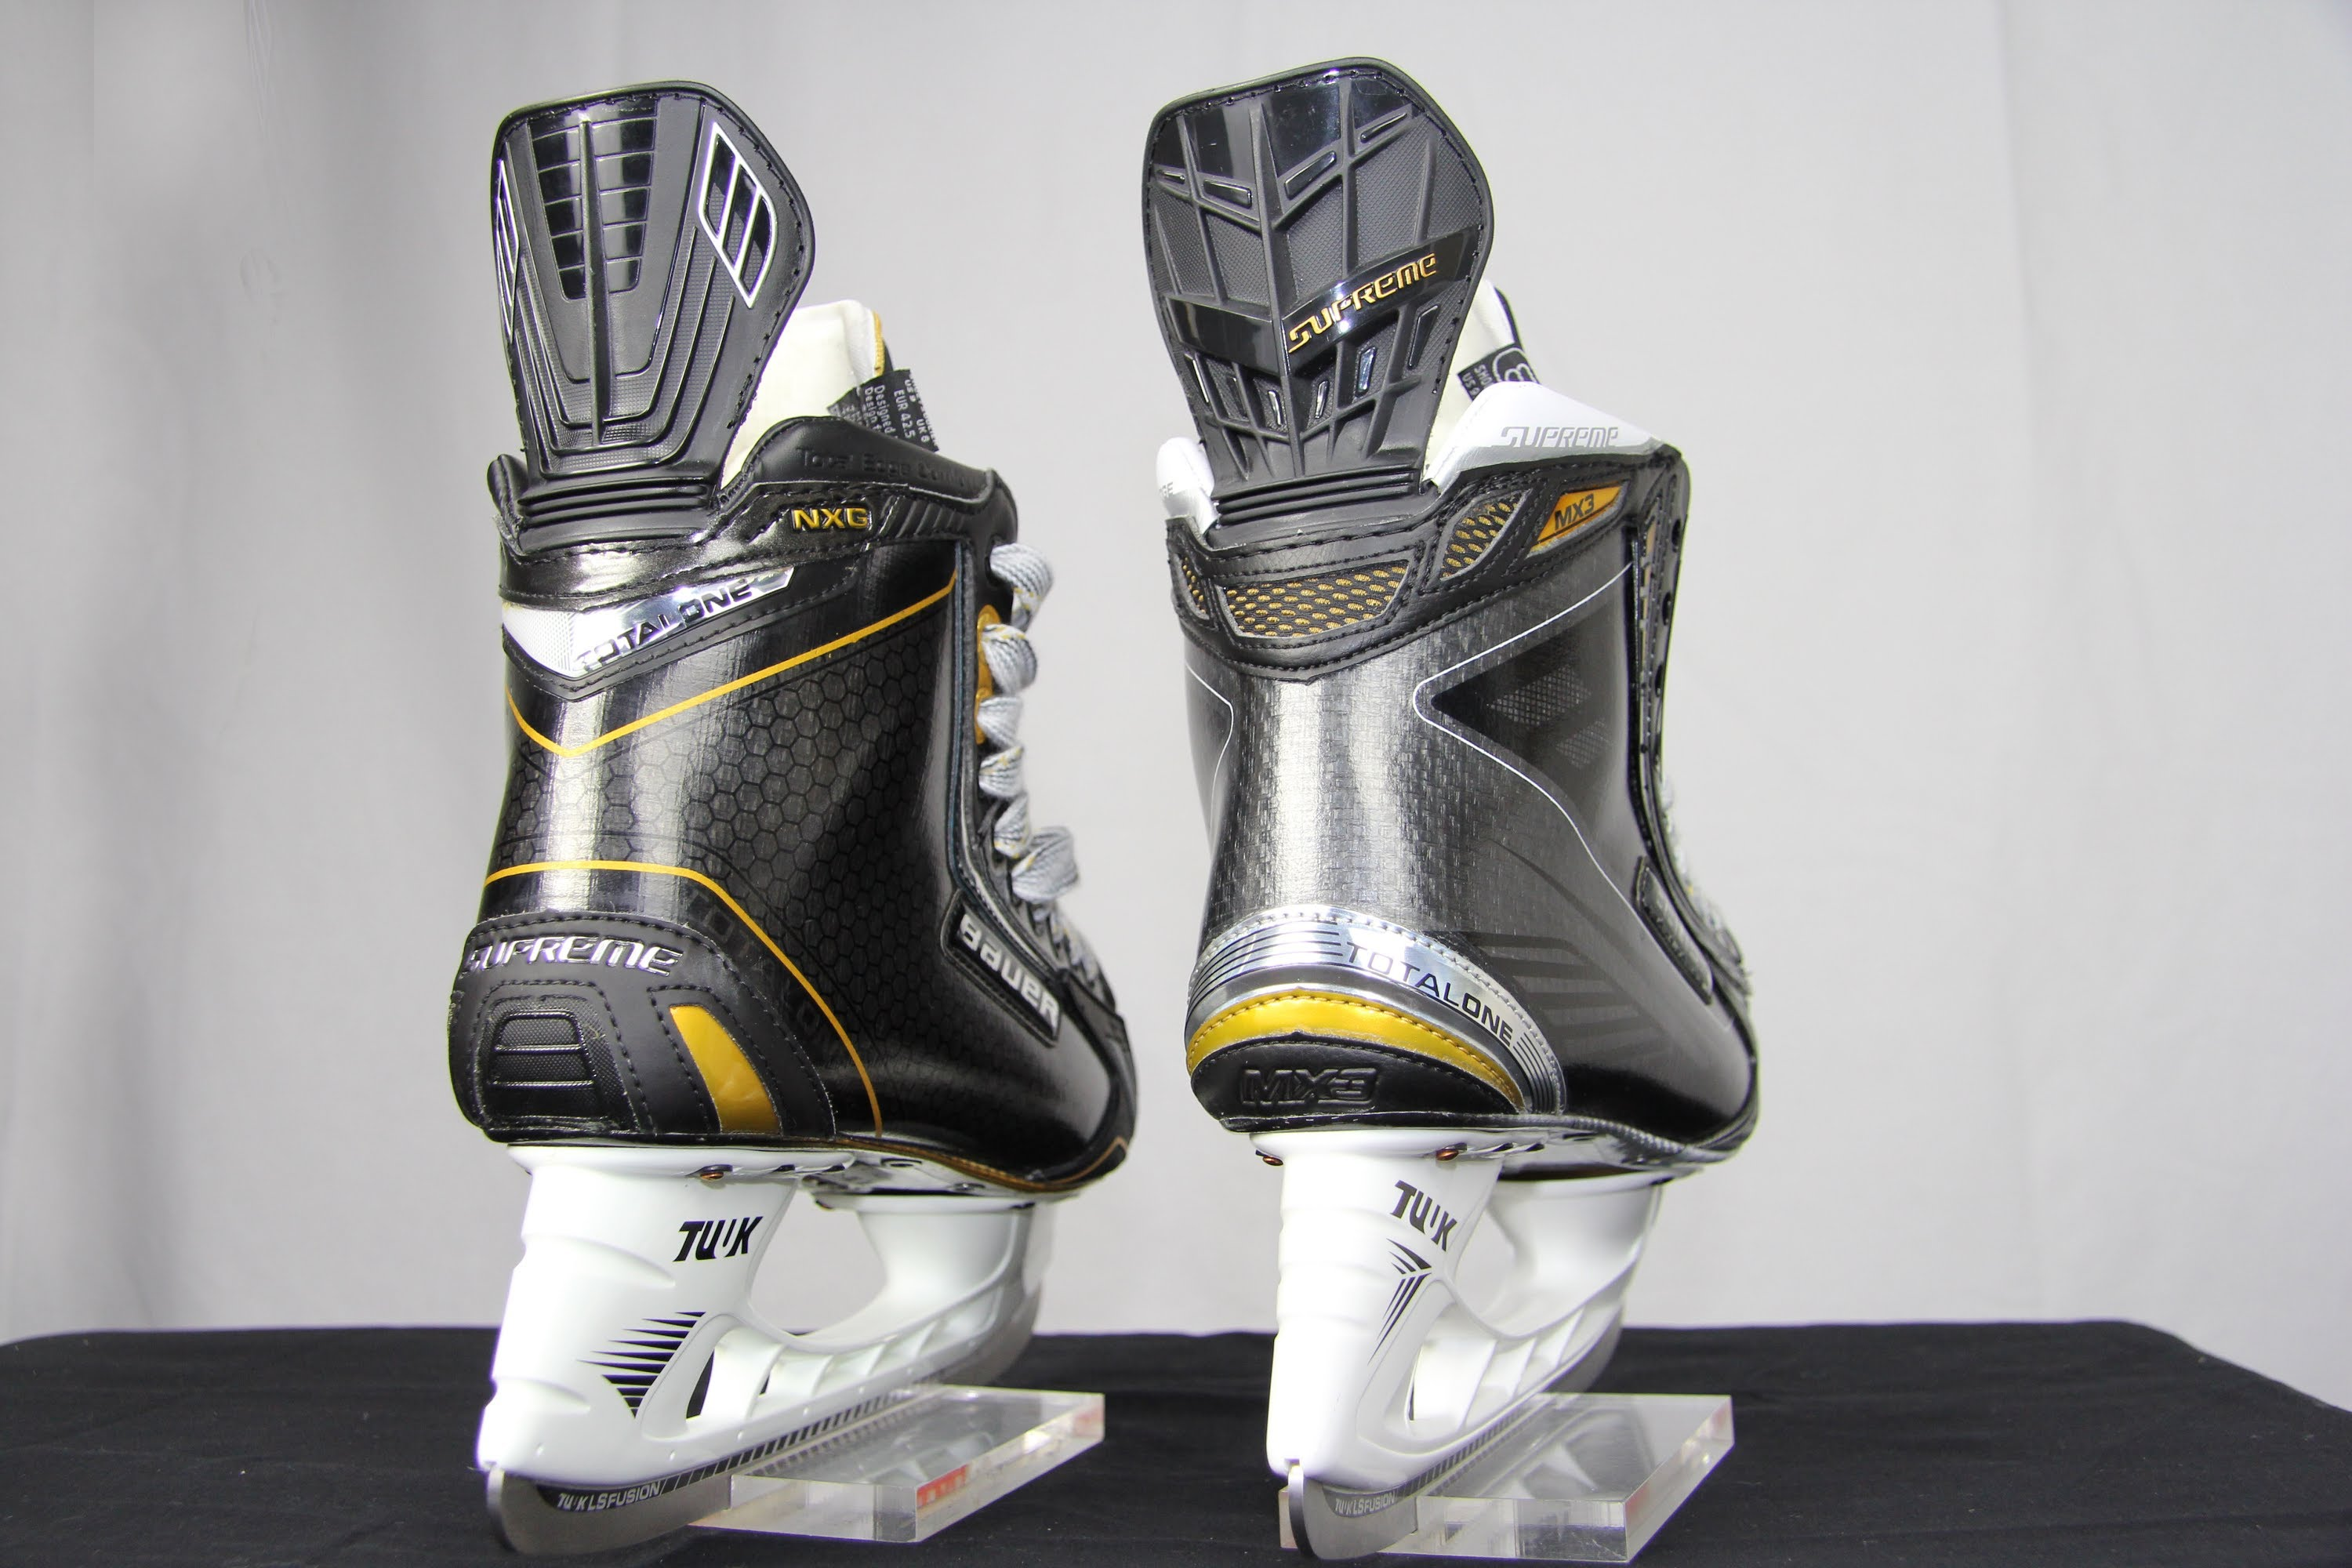 Bauer Supreme MX3 Skates vs Bauer Supreme Total One NXG Hockey Skates Compared